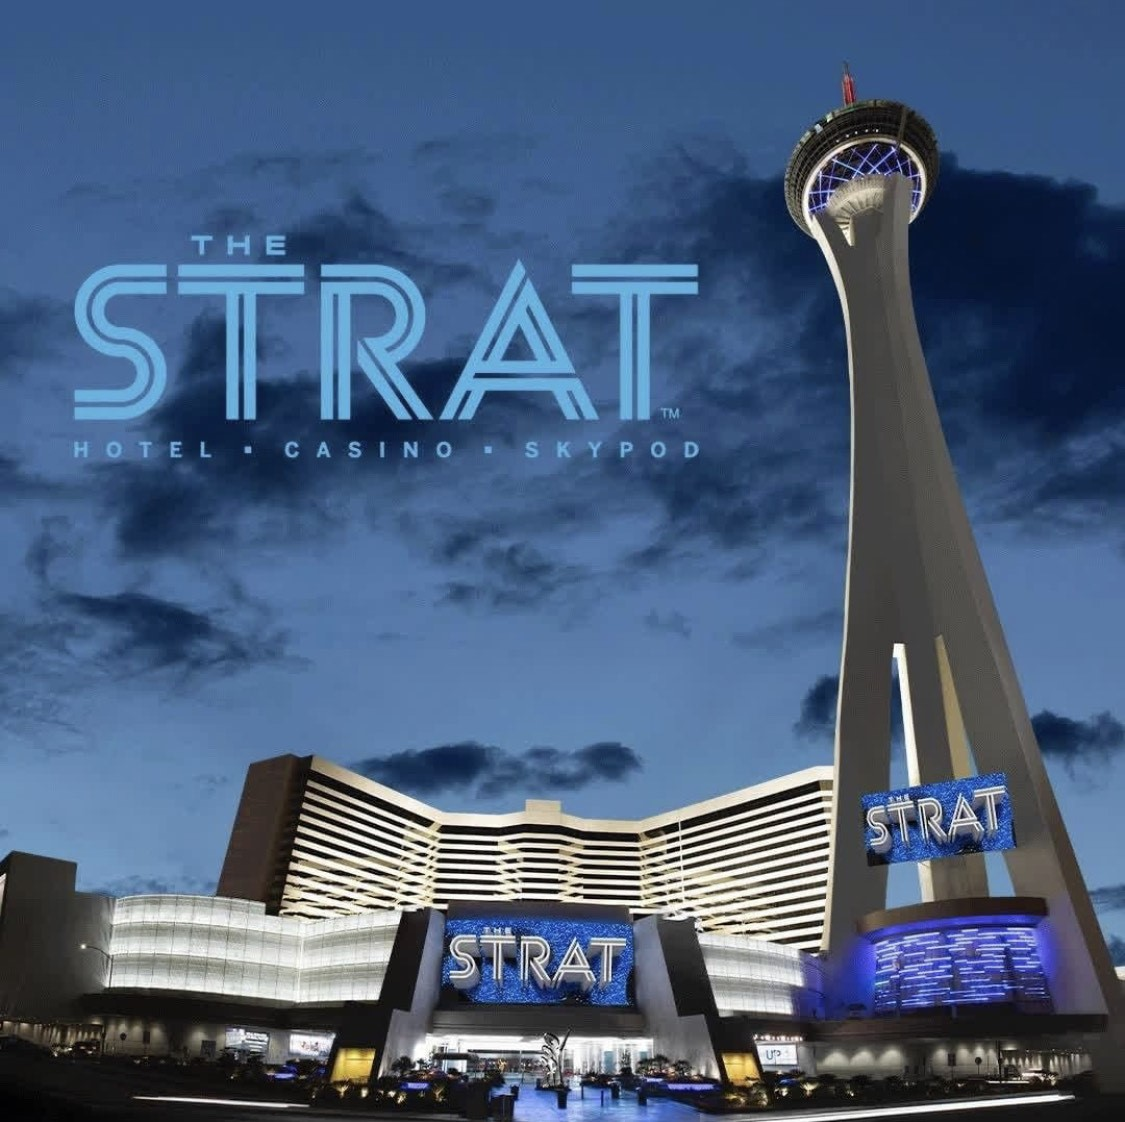 The Strat Las Vegas On Twitter The Biggest Sale Is Here For Cyber Monday Snag Deals On Hotel Stays Thrill Rides And Celestia Up To 55 Off Https T Co V9ci3hqlj5 Https T Co Ndzqduy5dq